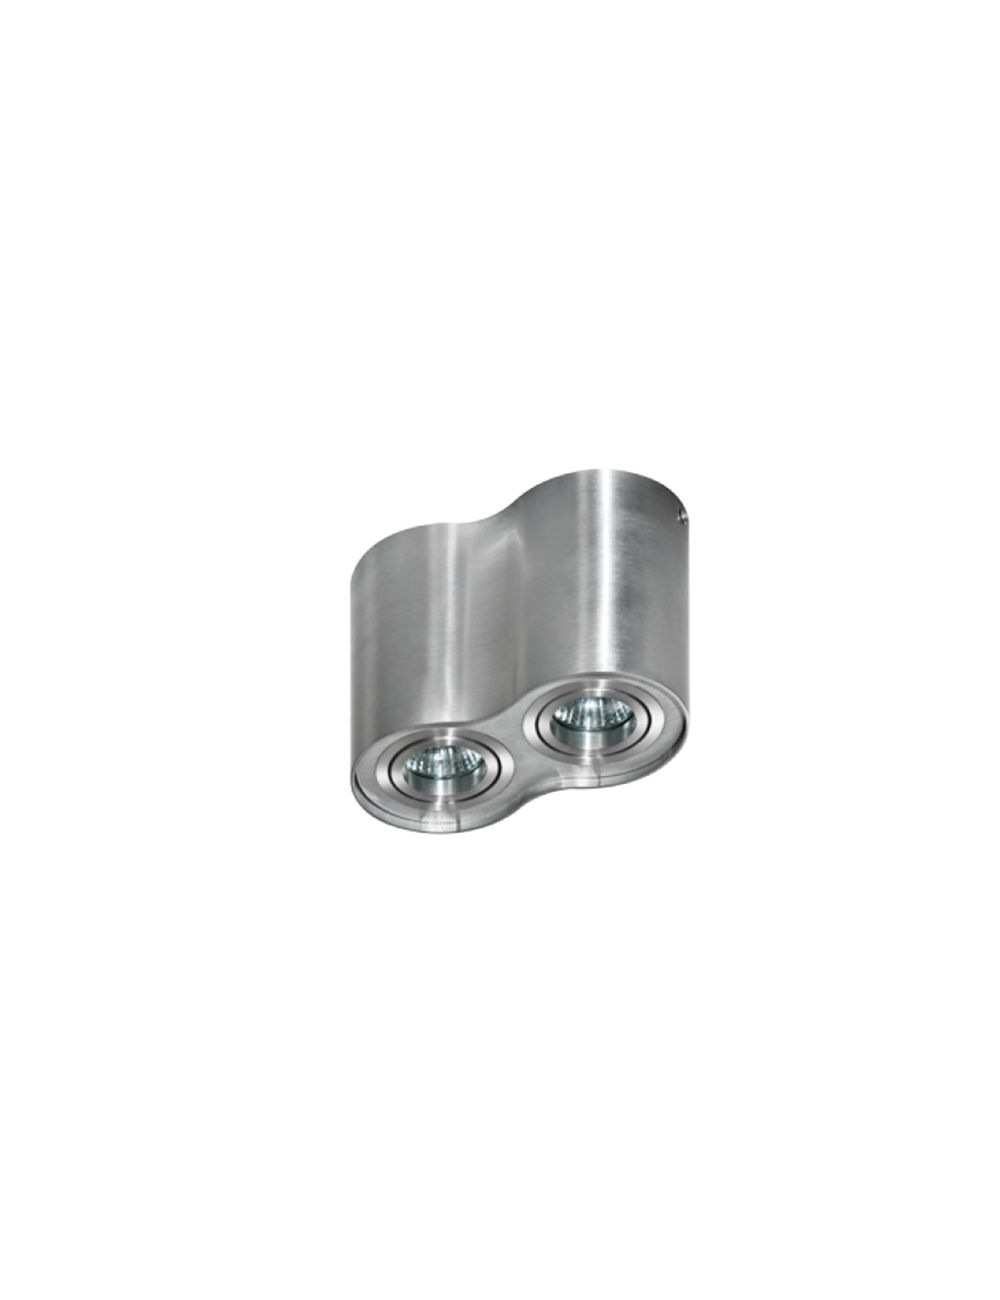 GM4200 Bross 2 aluminium Azzardo